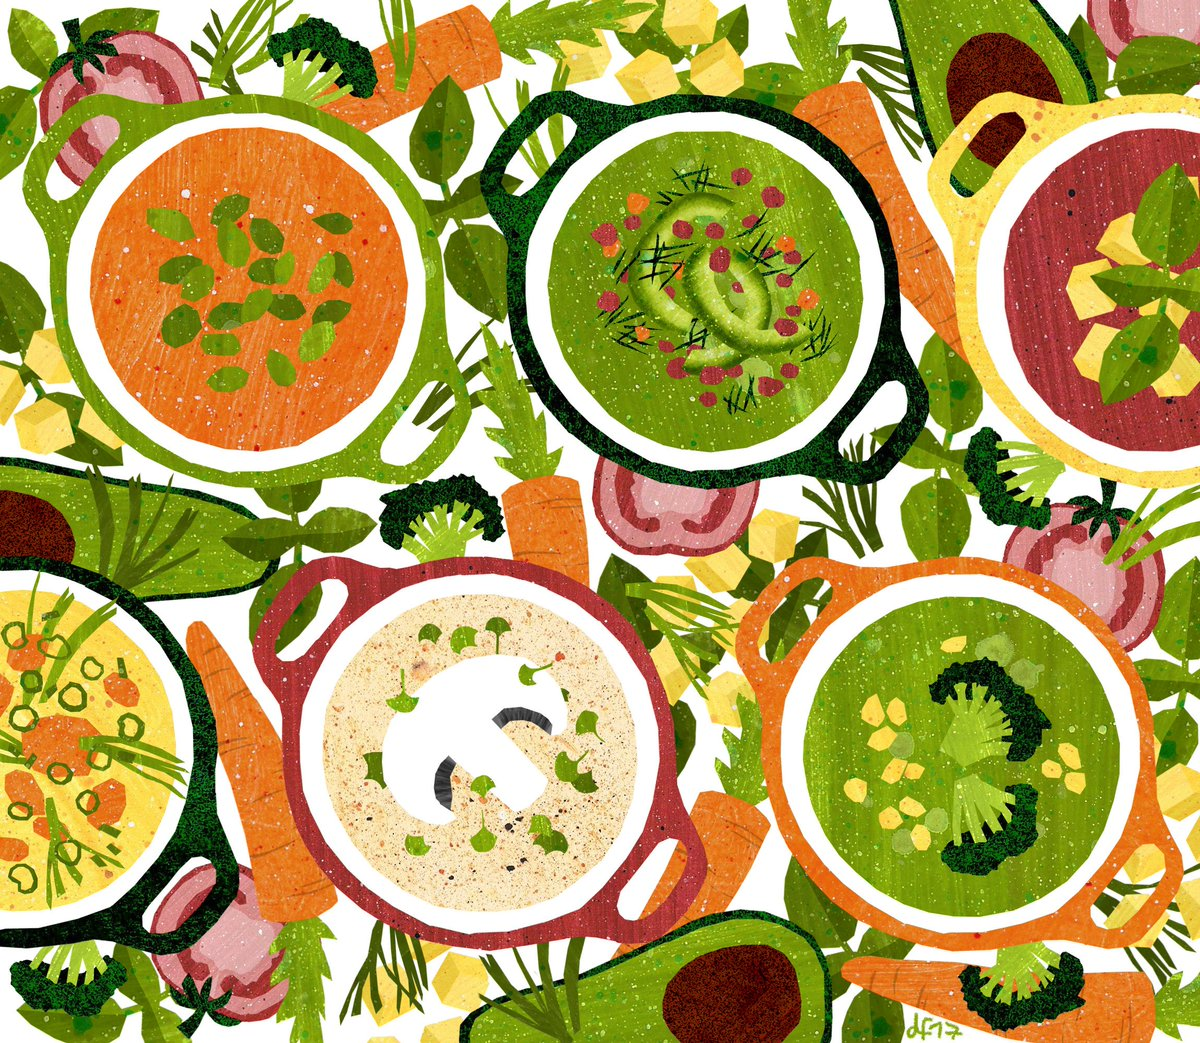 Anyone cold and up for soup? Avocado soup, carrot, broccoli, mushroom, whatever you like best! #colour_collective #illustration #food #avocado #mushrooms #carrots #veggie #broccoli #soups<br>http://pic.twitter.com/BbpIsmj7V1